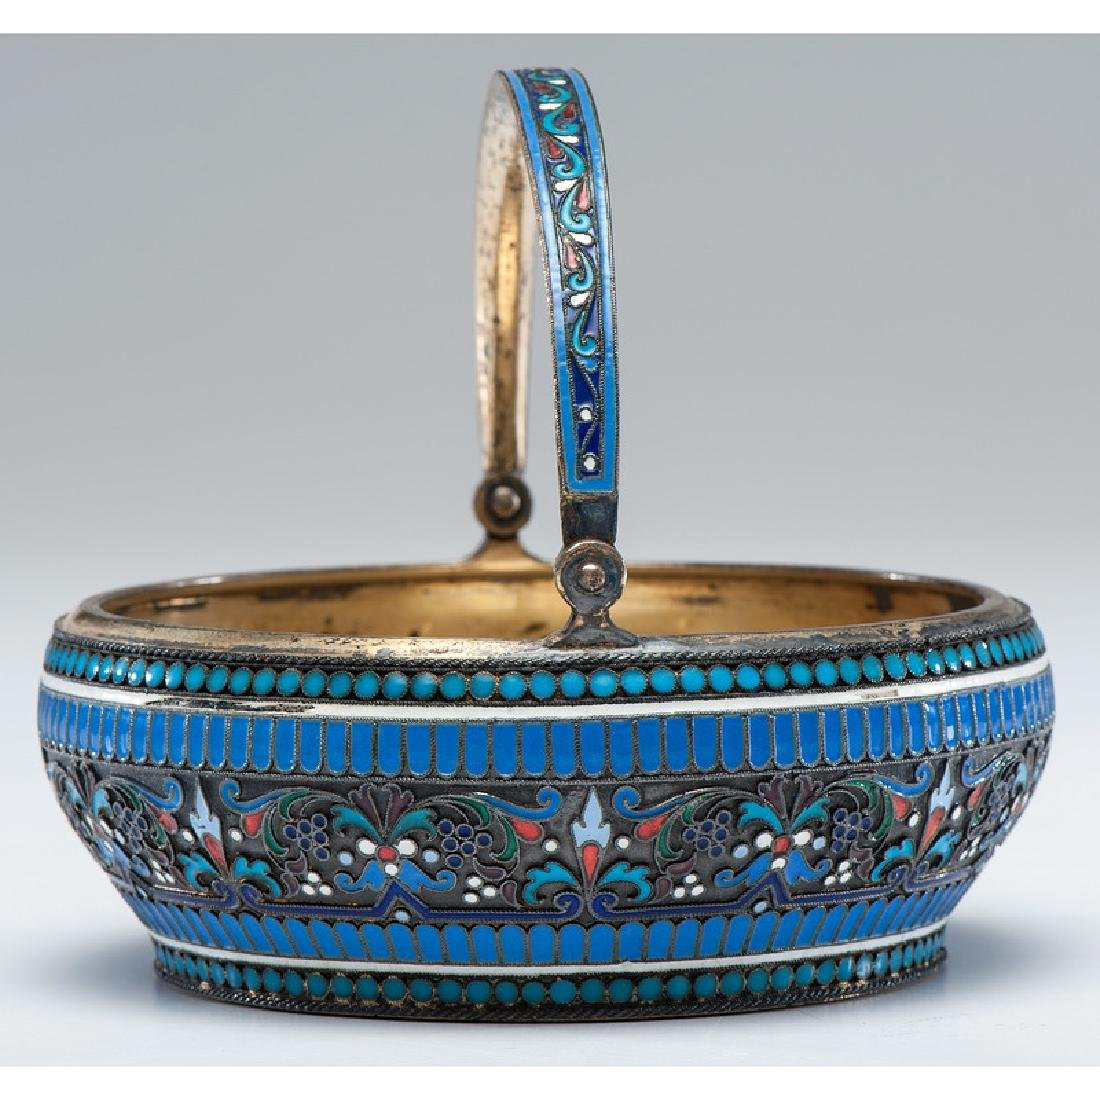 Russian Silver-Gilt and Enamel Basket - 3